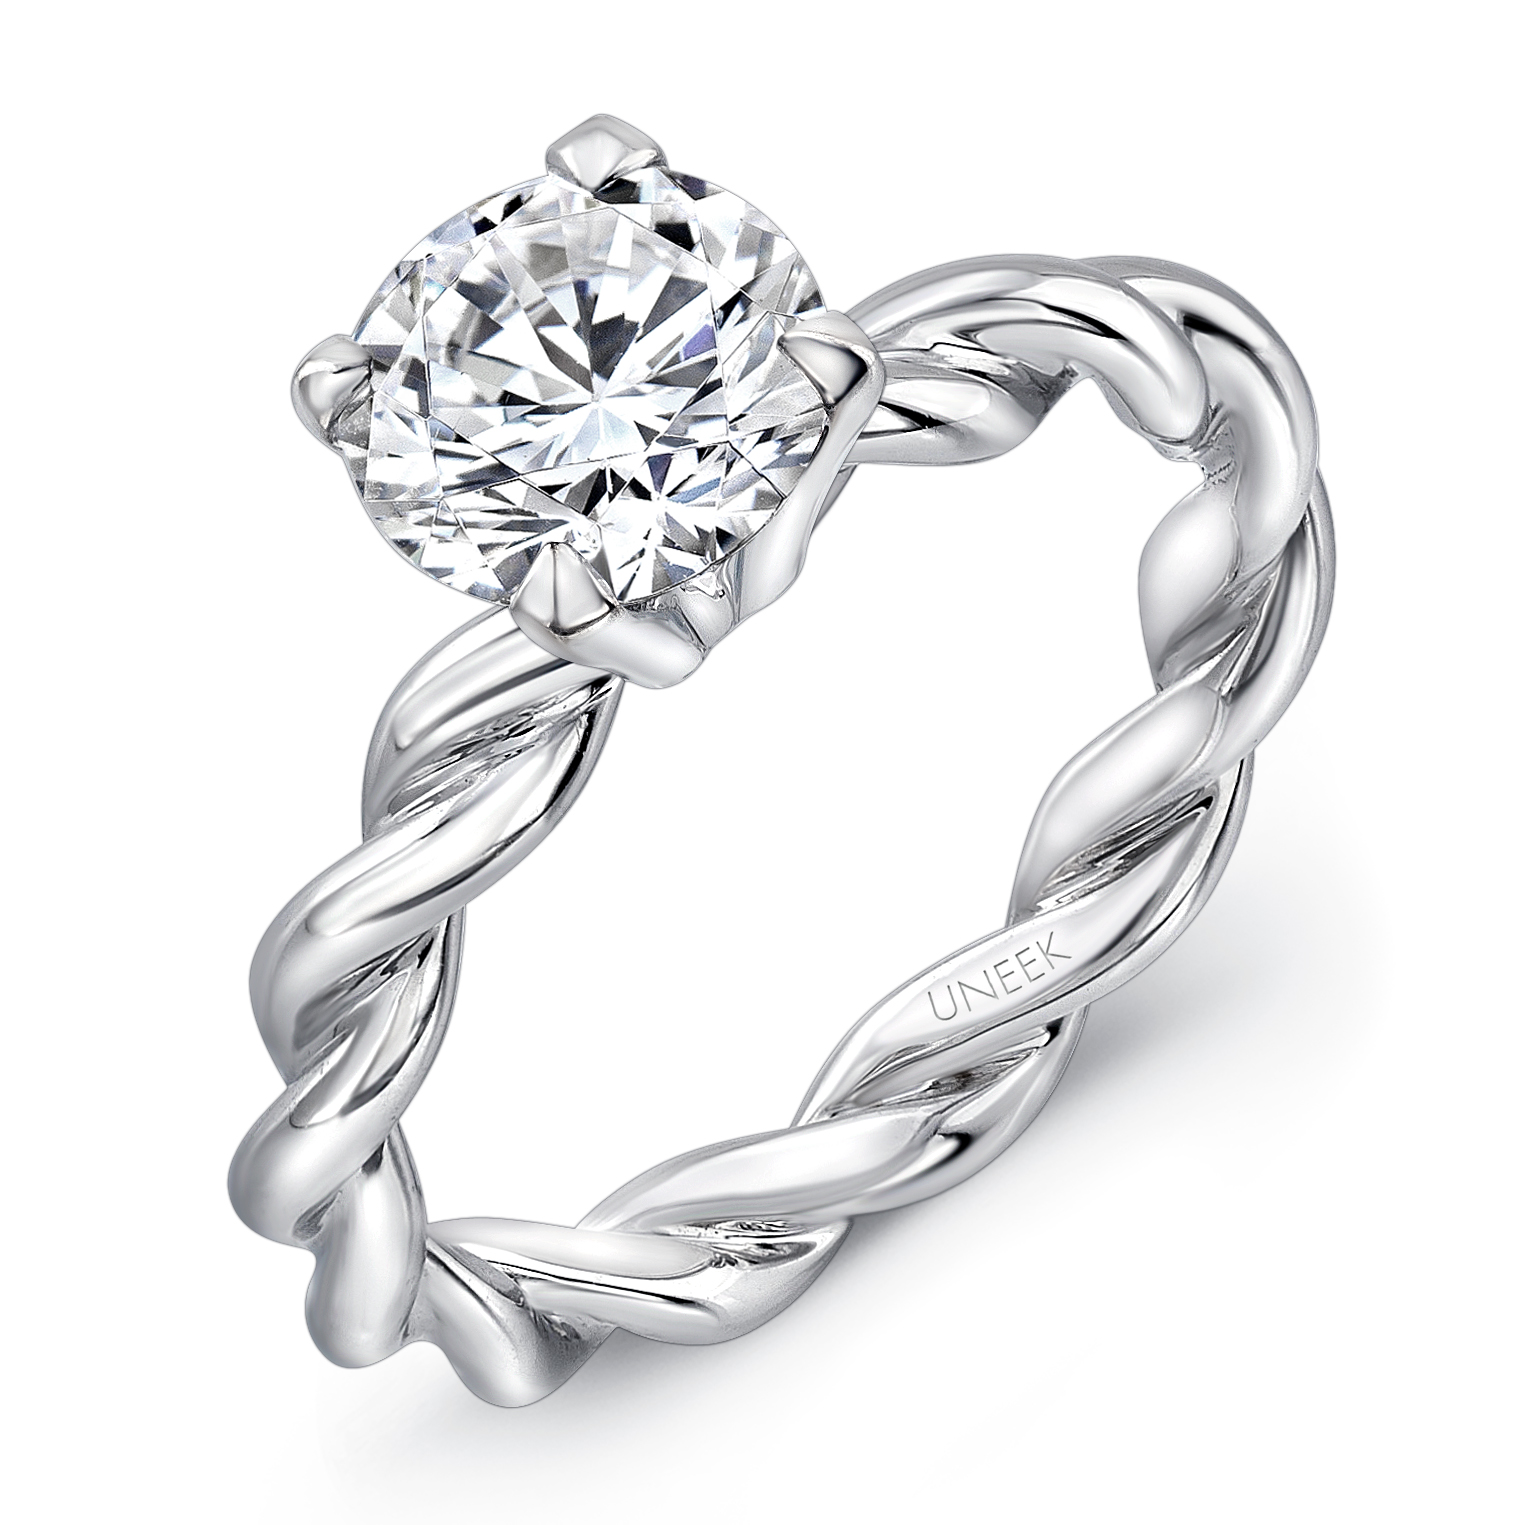 Unique Diamond Engagement Ring Twist